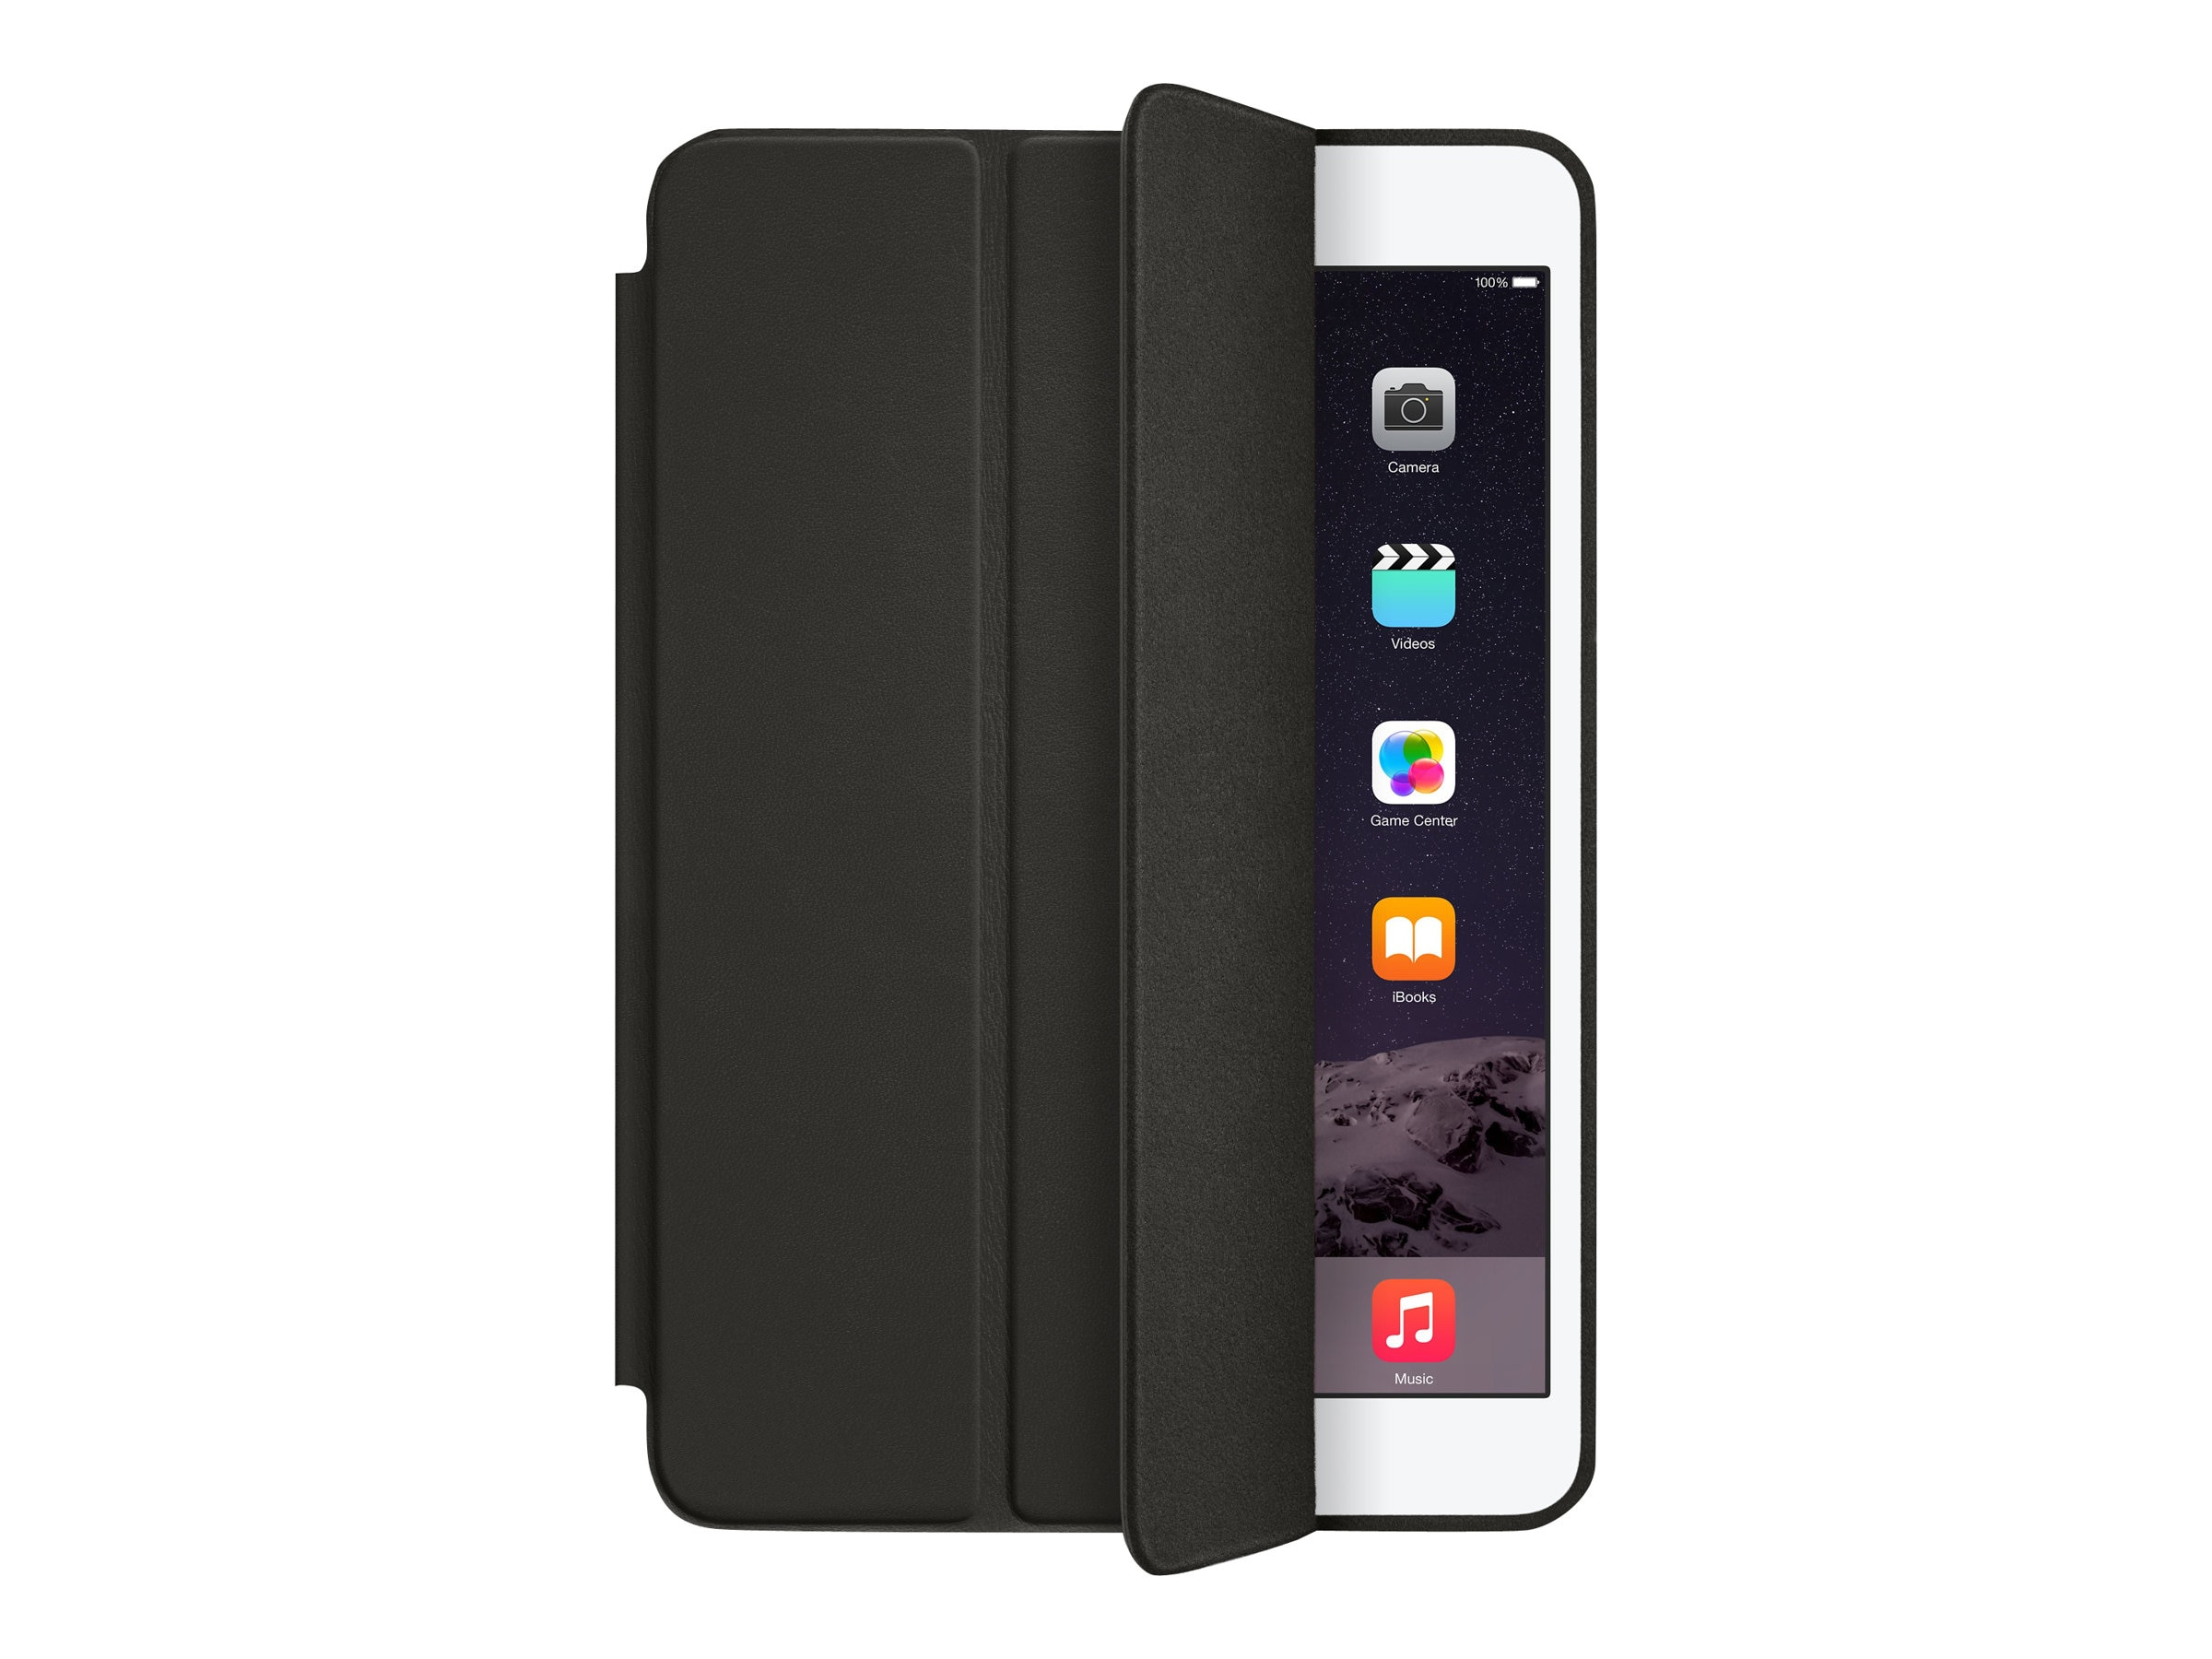 Apple iPad mini Smart Case, Black, MGN62ZM/A, 20592402, Carrying Cases - Tablets & eReaders